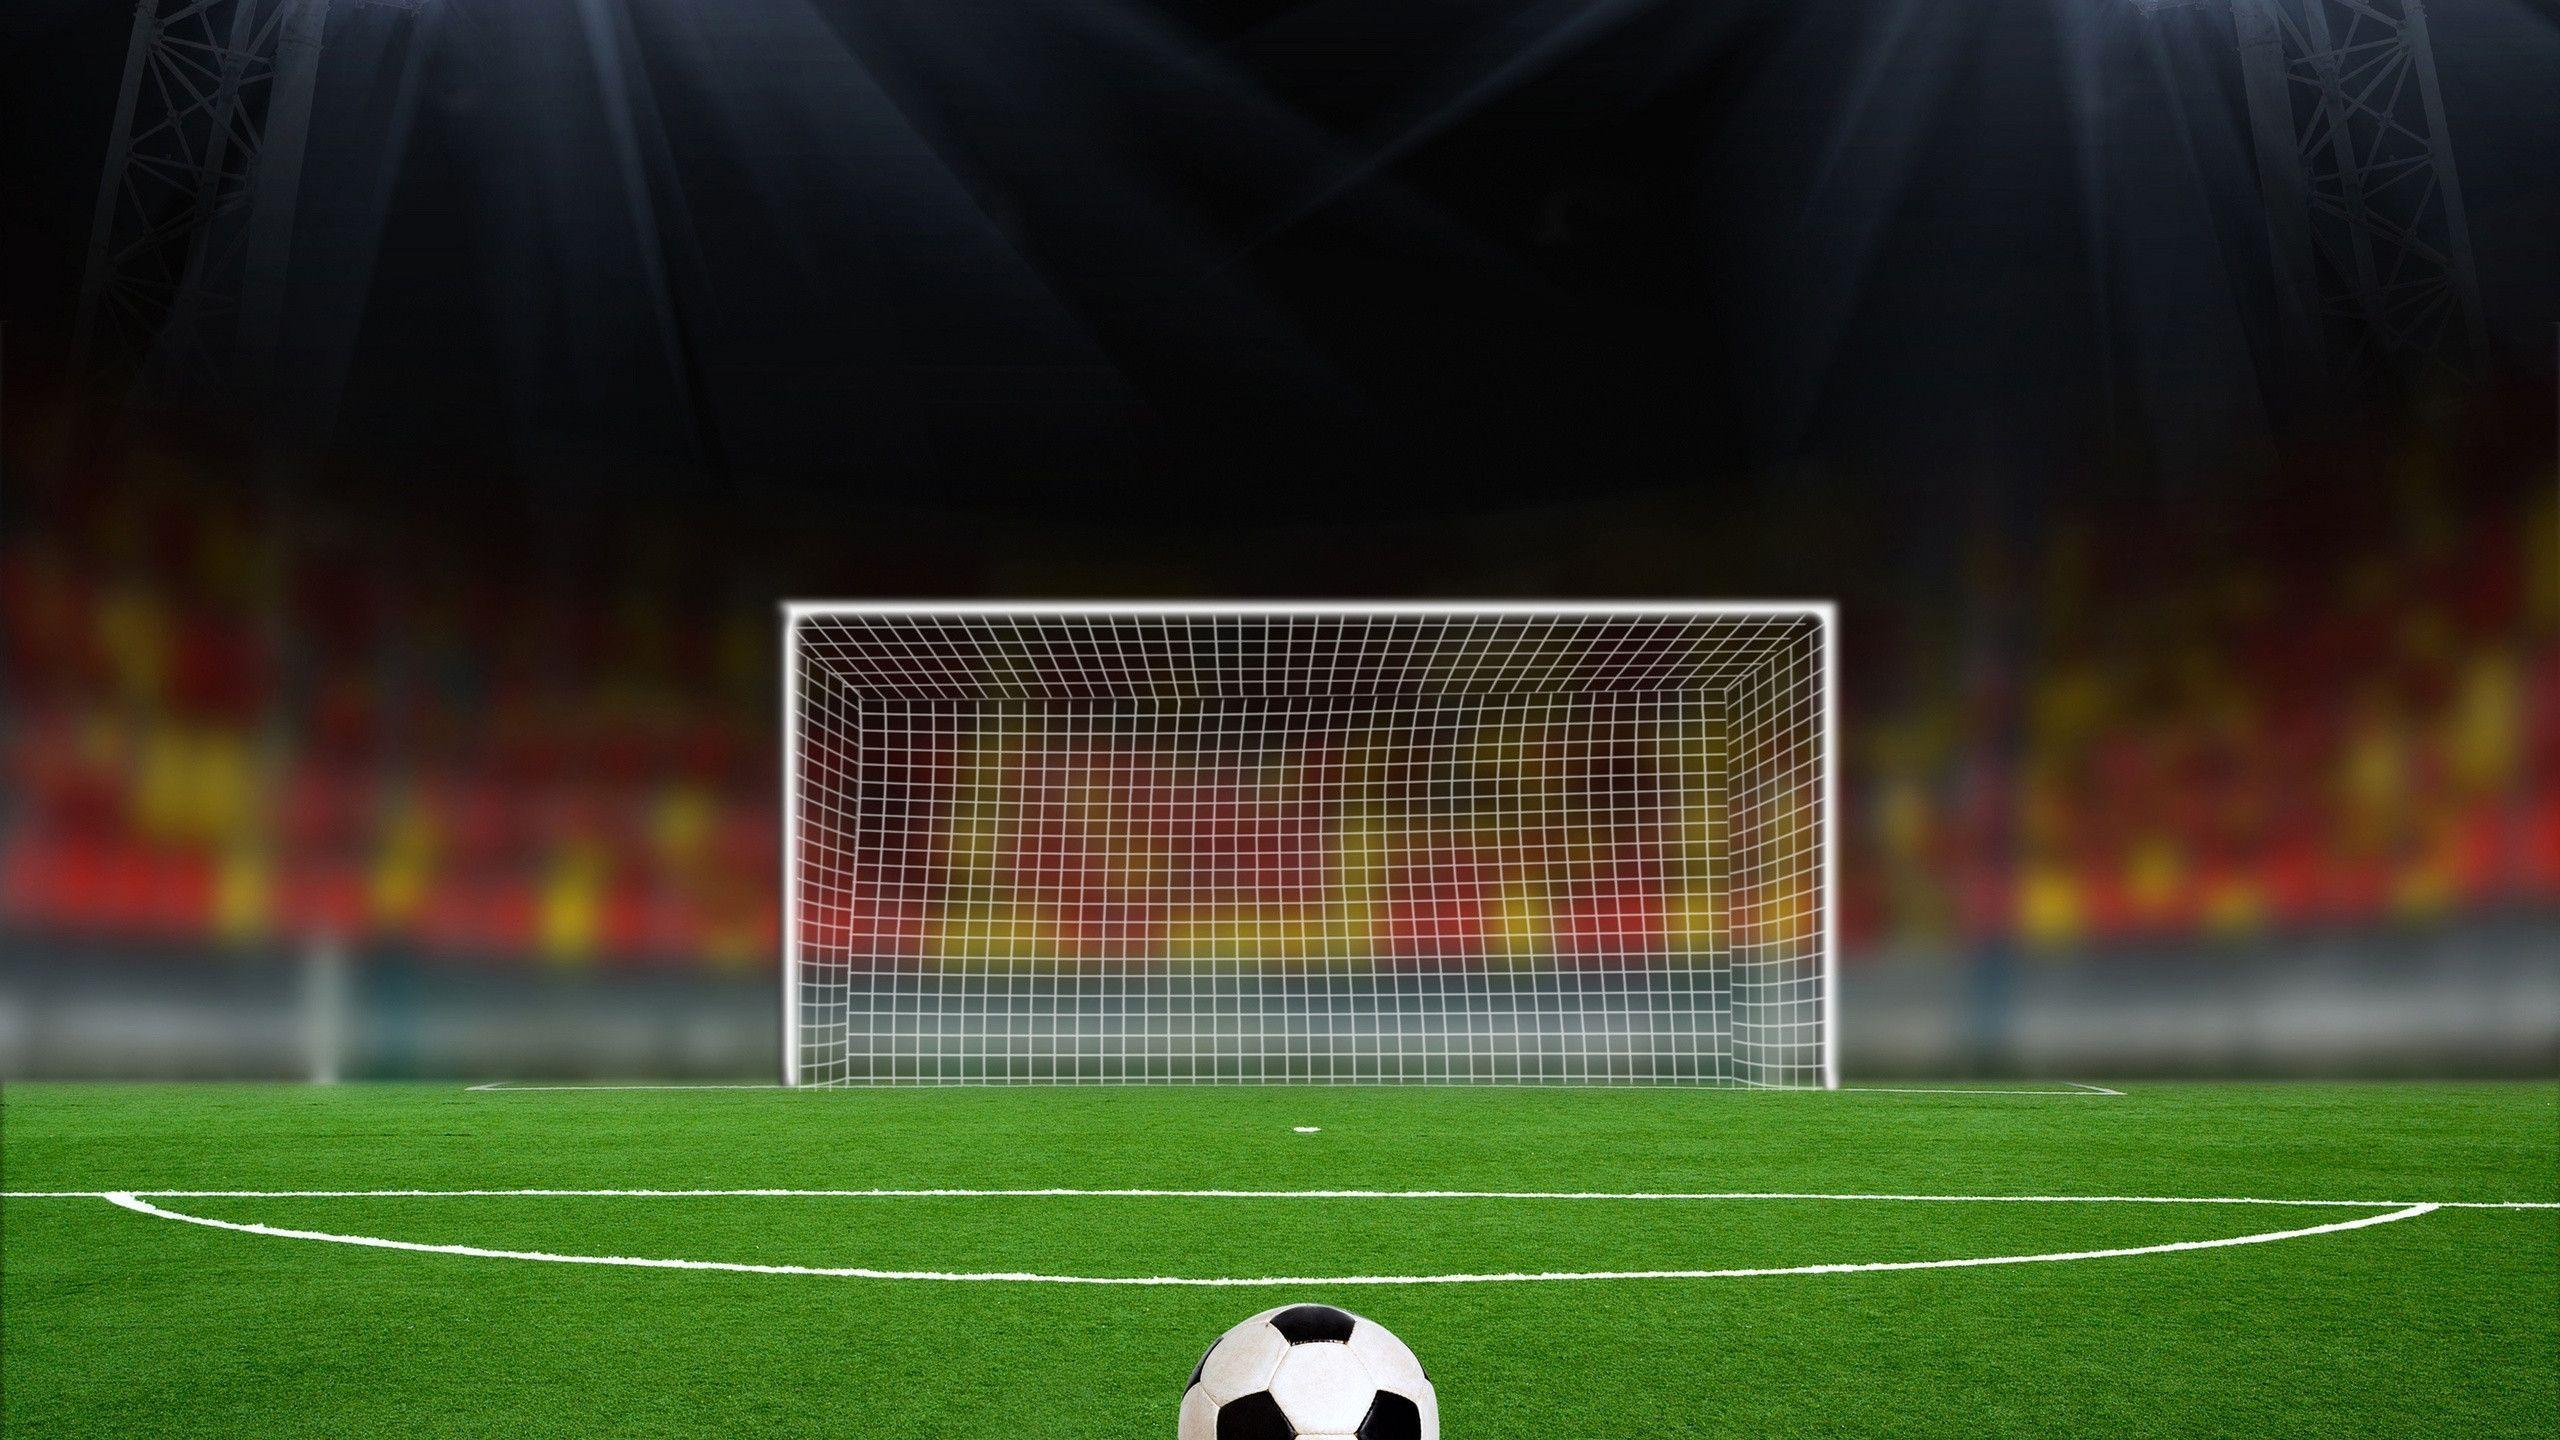 Football Backgrounds - Wallpaper Cave